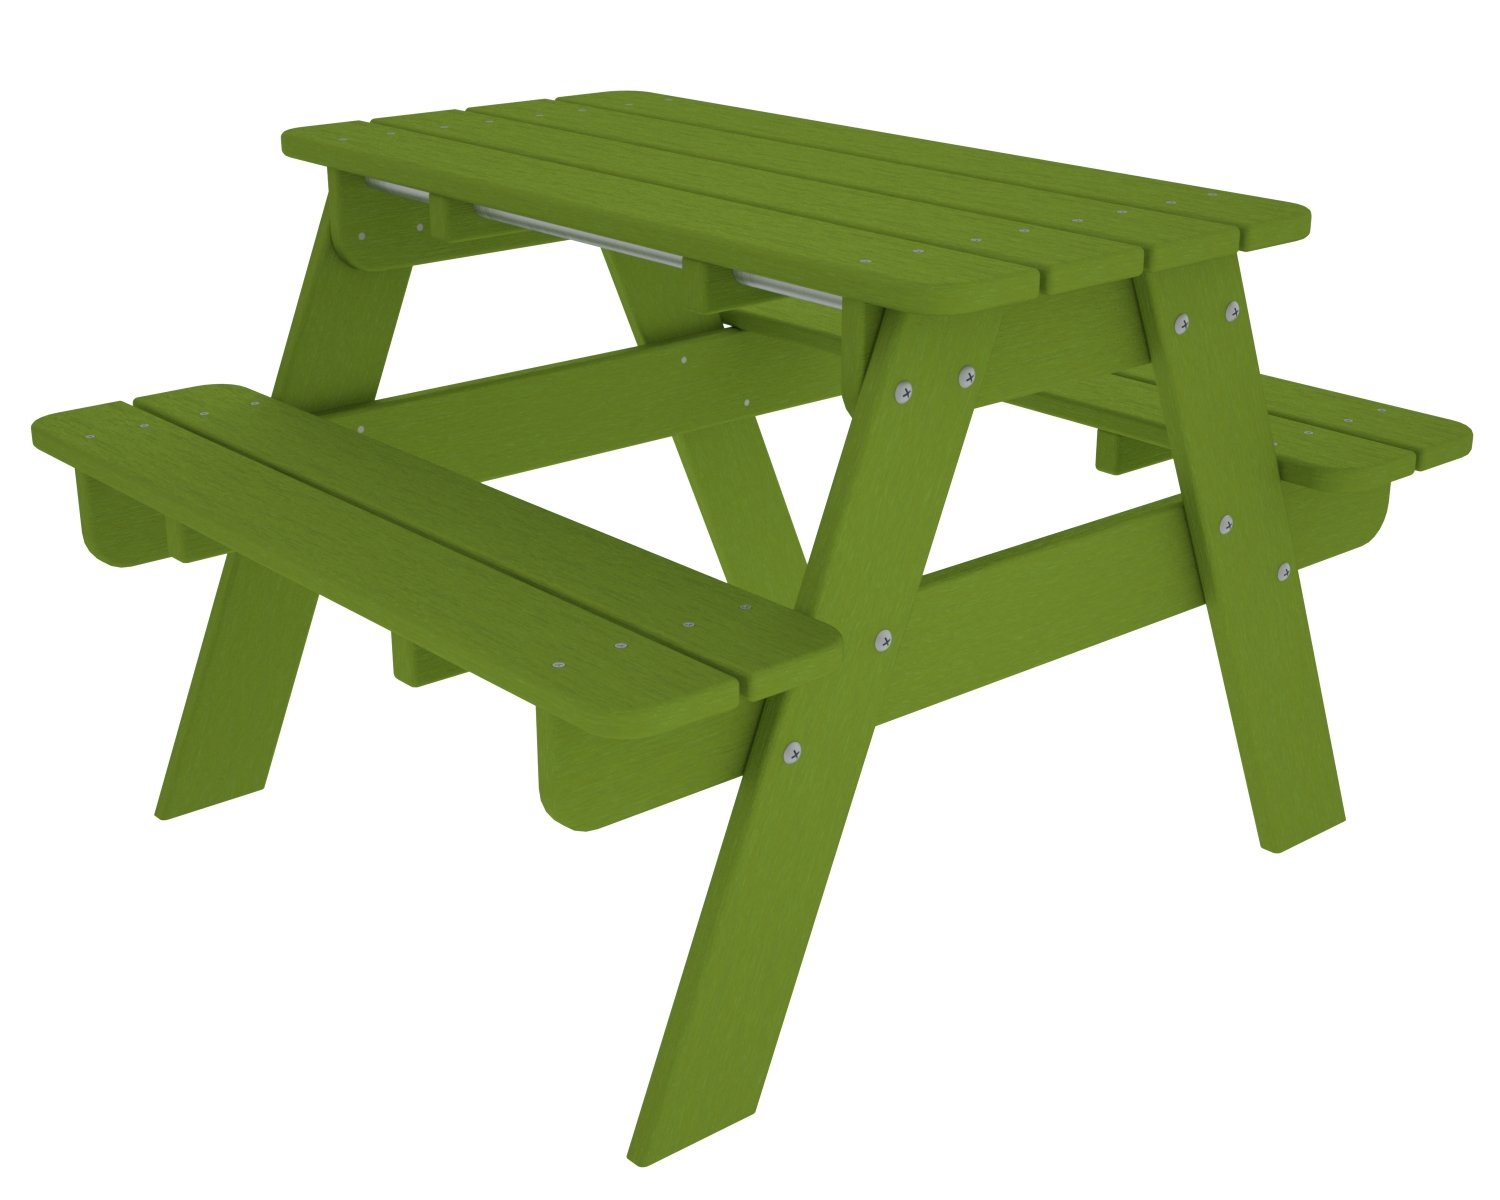 Amazon.com : POLYWOOD Outdoor Furniture Kid Picnic Table, Lime Recycled  Plastic Materials : Garden U0026 Outdoor